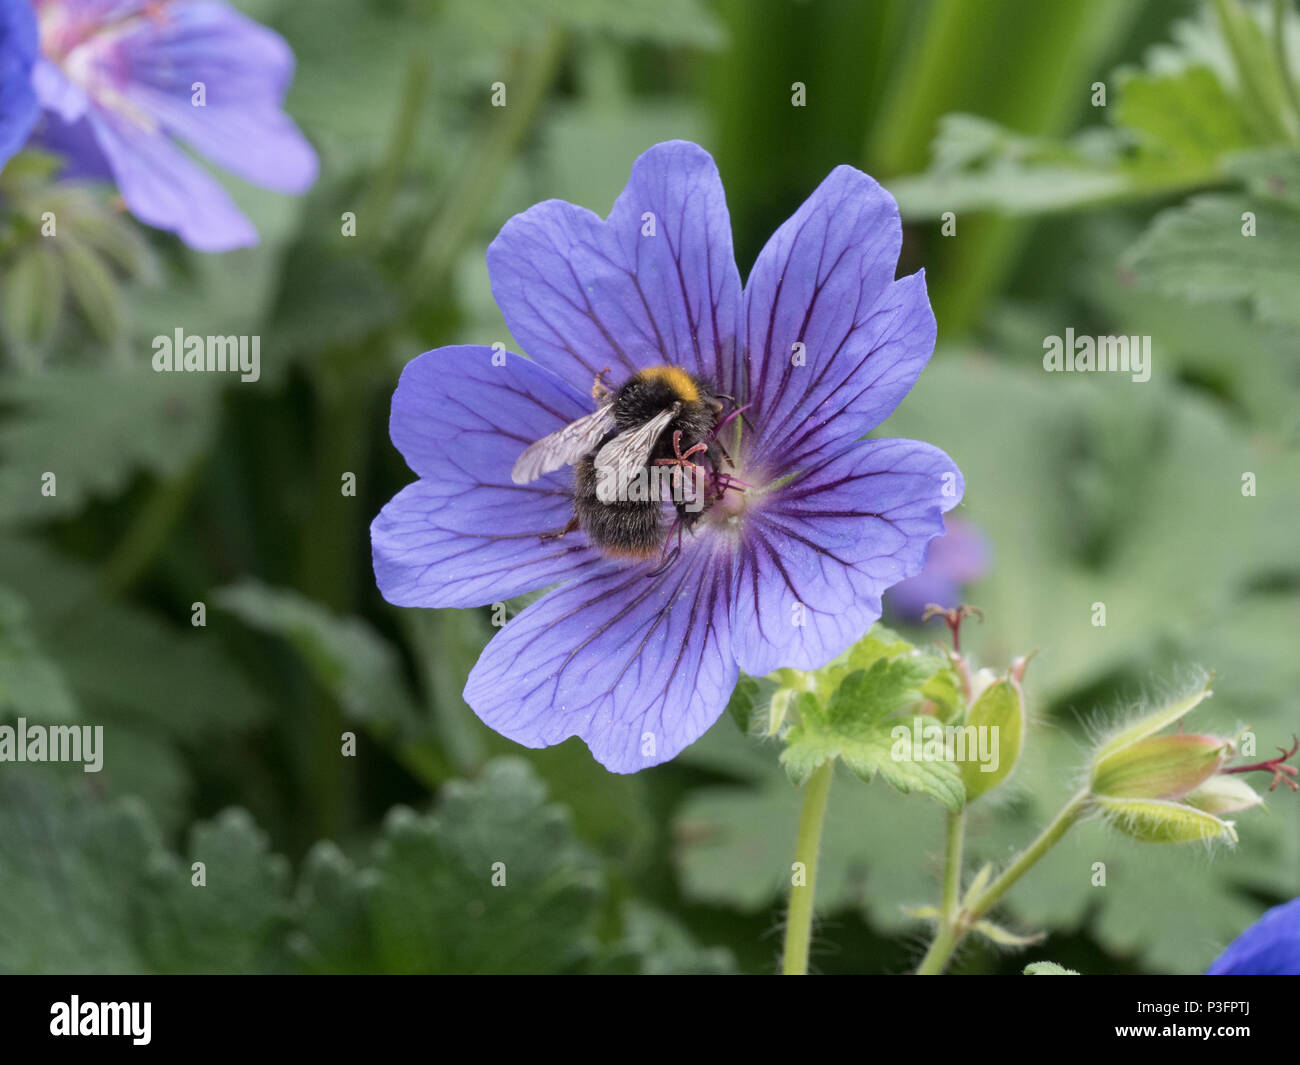 An early bumble bee feeding on a single blue geranium flower - Stock Image